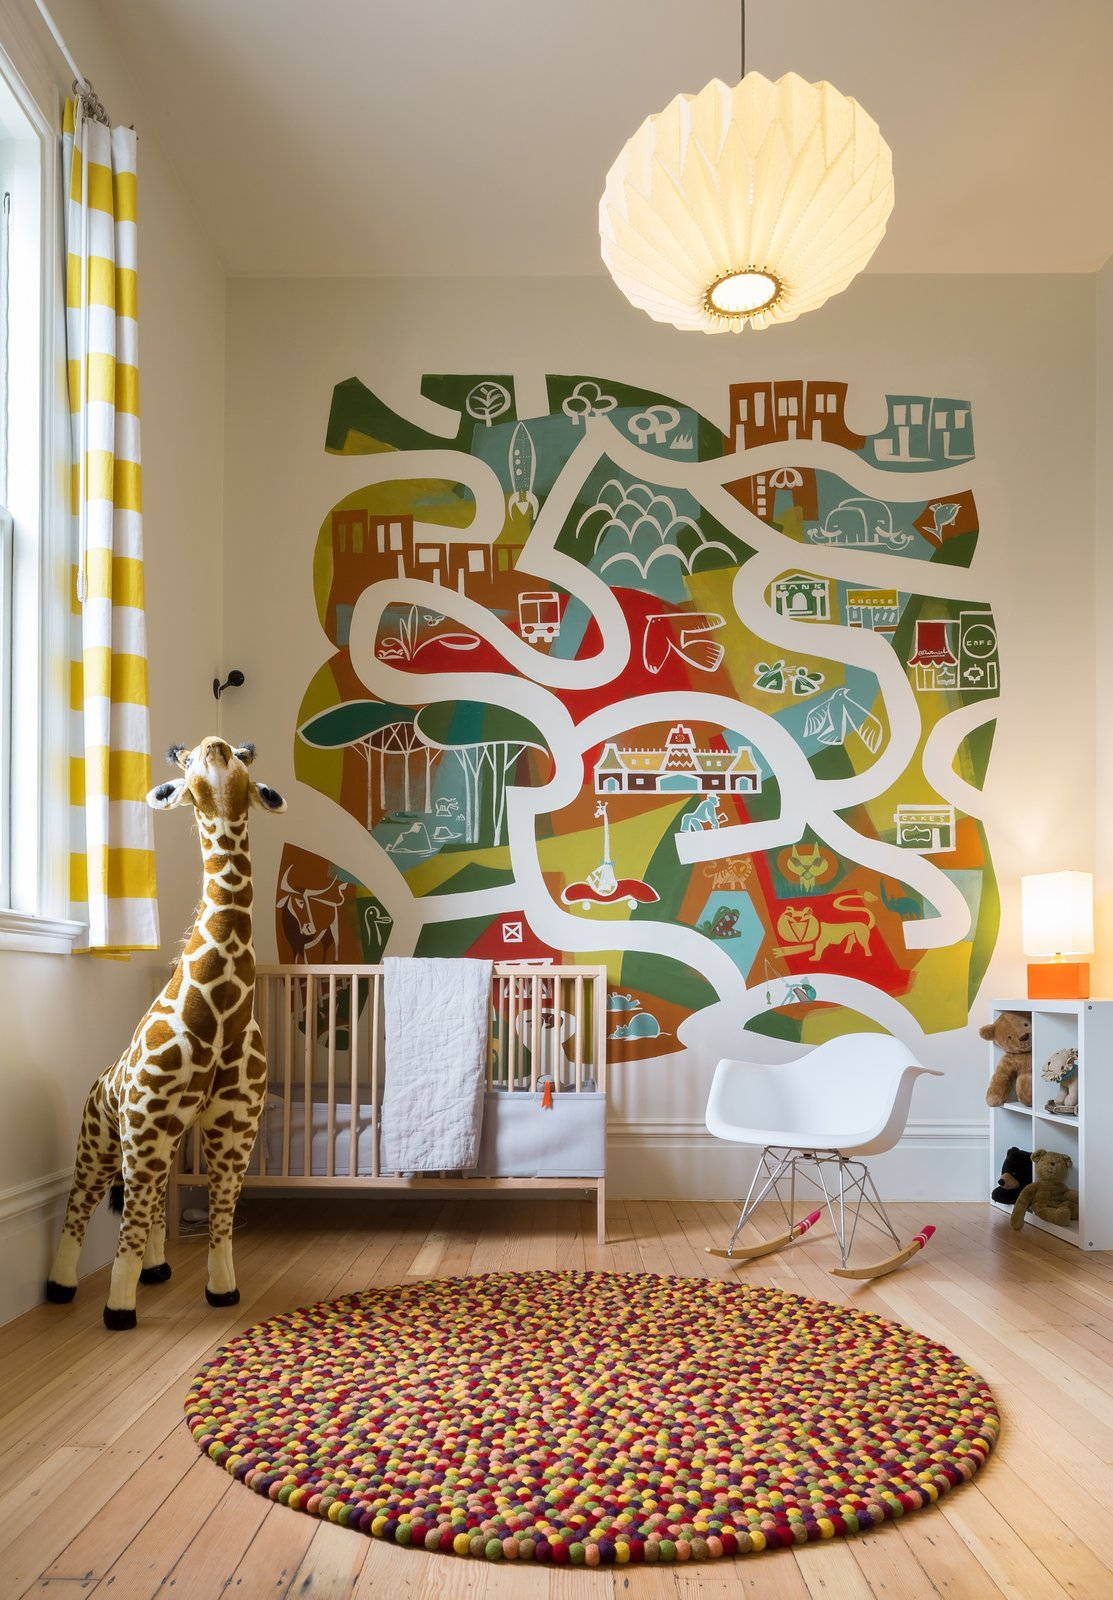 Pierce Street Residence nursery